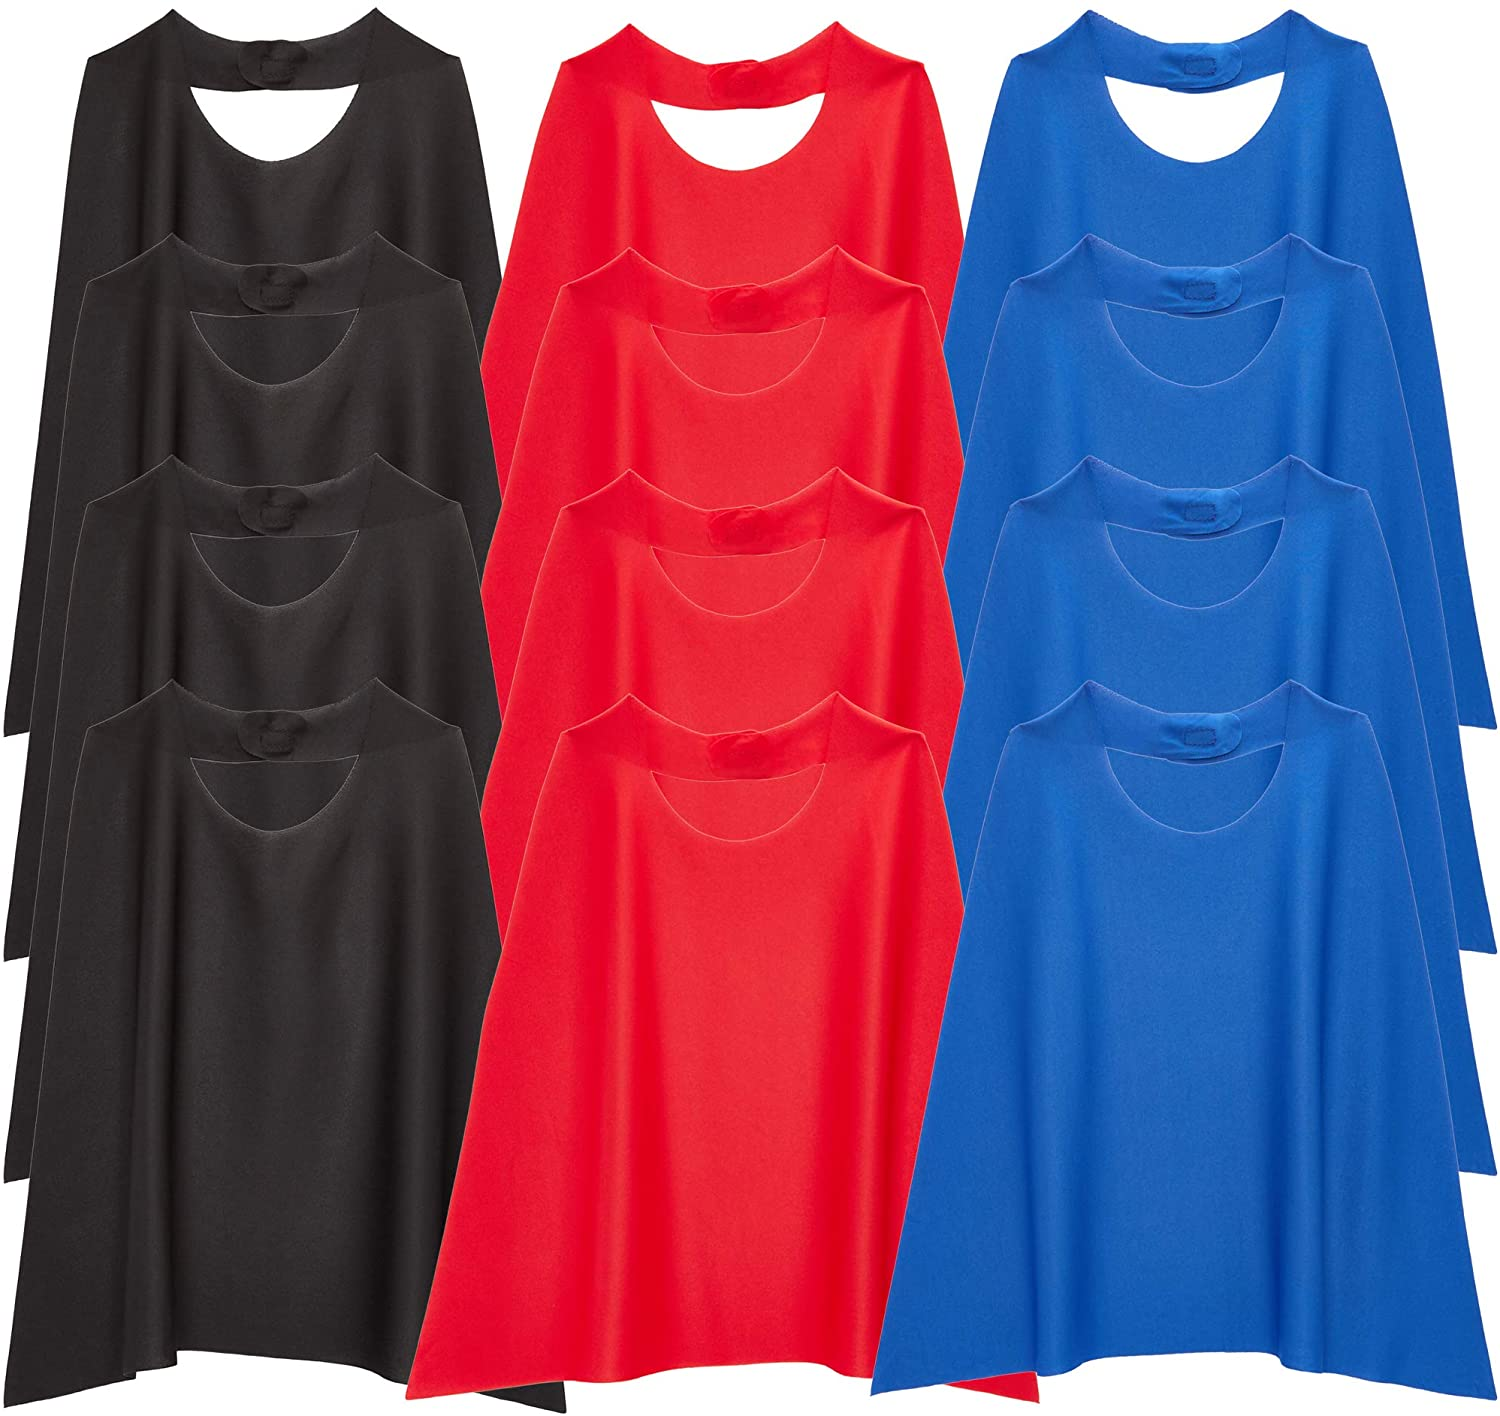 Superhero Dress Up Capes for Kids Costumes (Black, Red, Blue, 12 Pack)